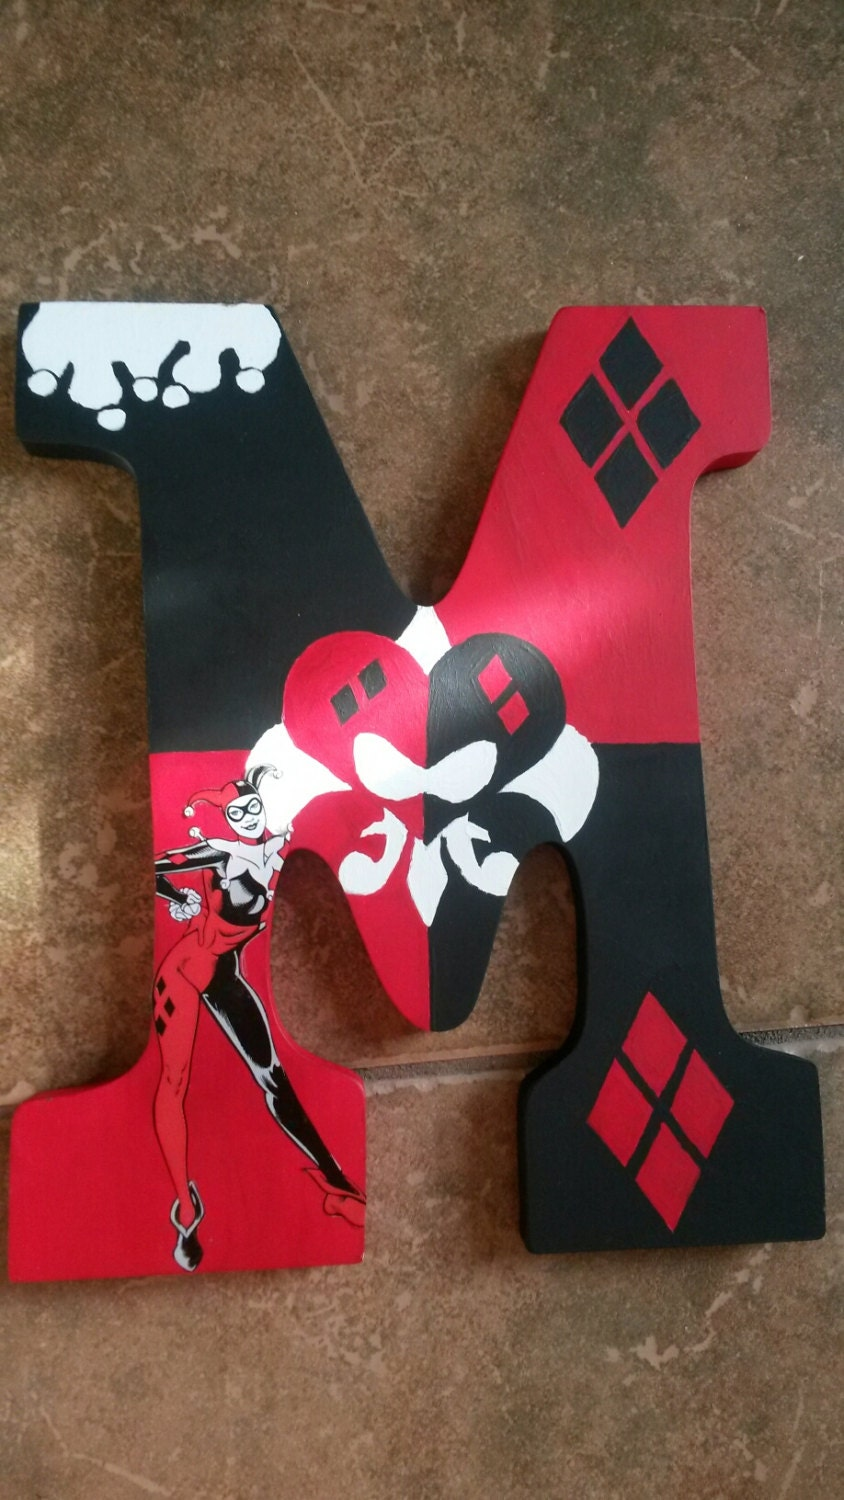 Harley quinn customized letter for Harley quinn bedroom ideas